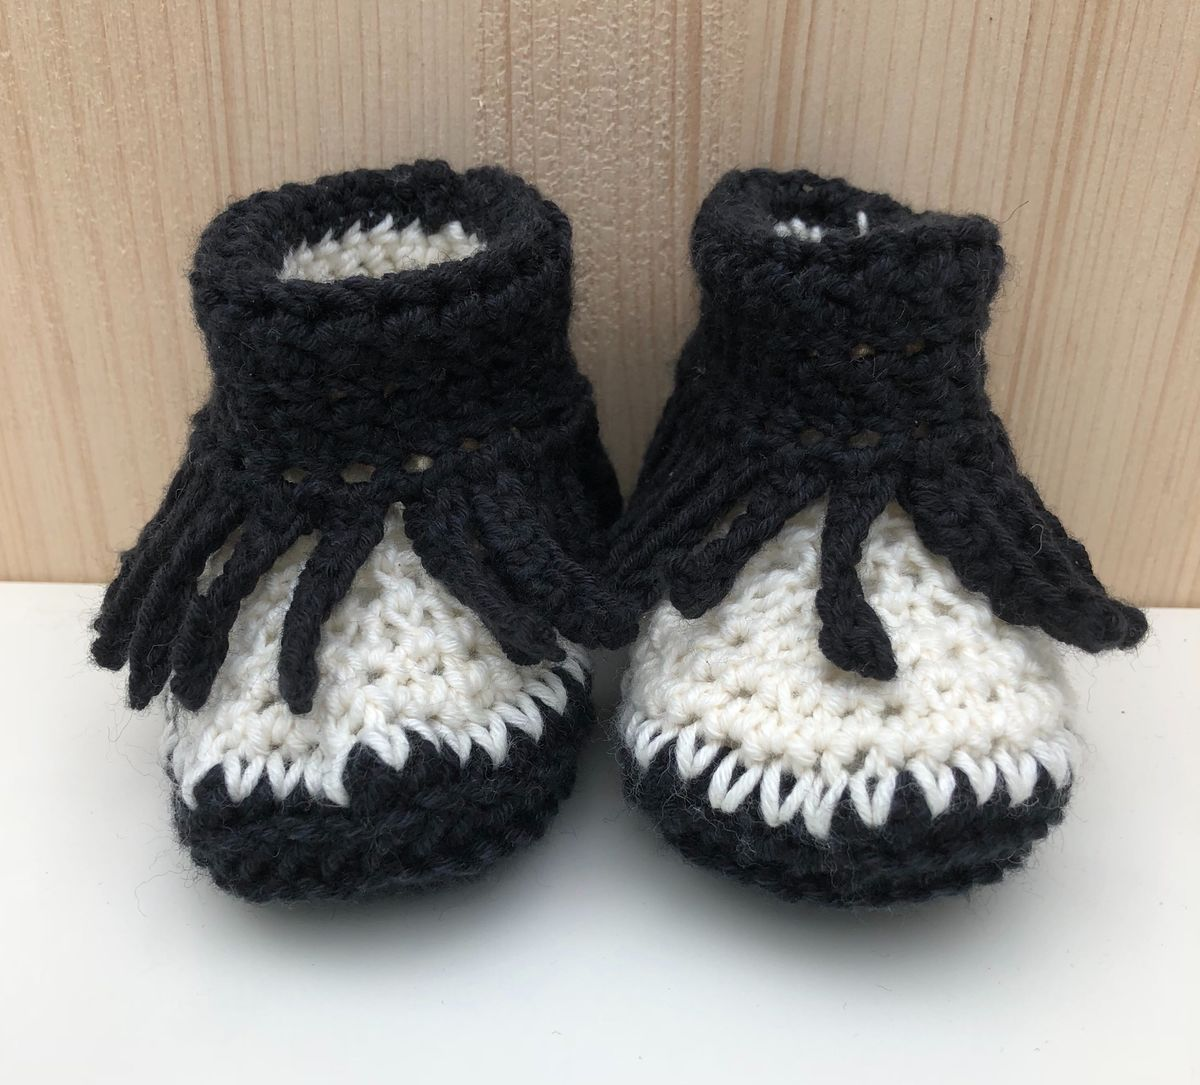 Baby moccasin style bootie/shoes (black/off white) - product images  of